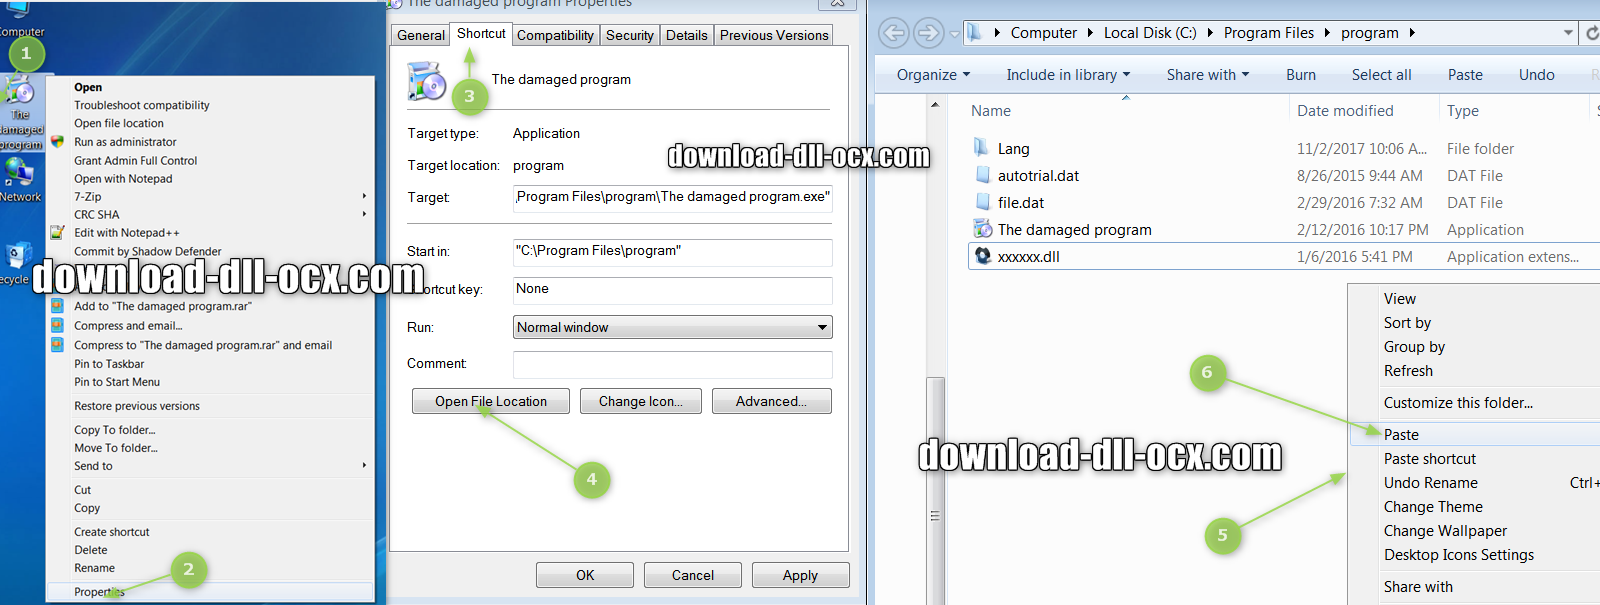 how to install xdebug-4.4dev-1.3dev.dll file? for fix missing